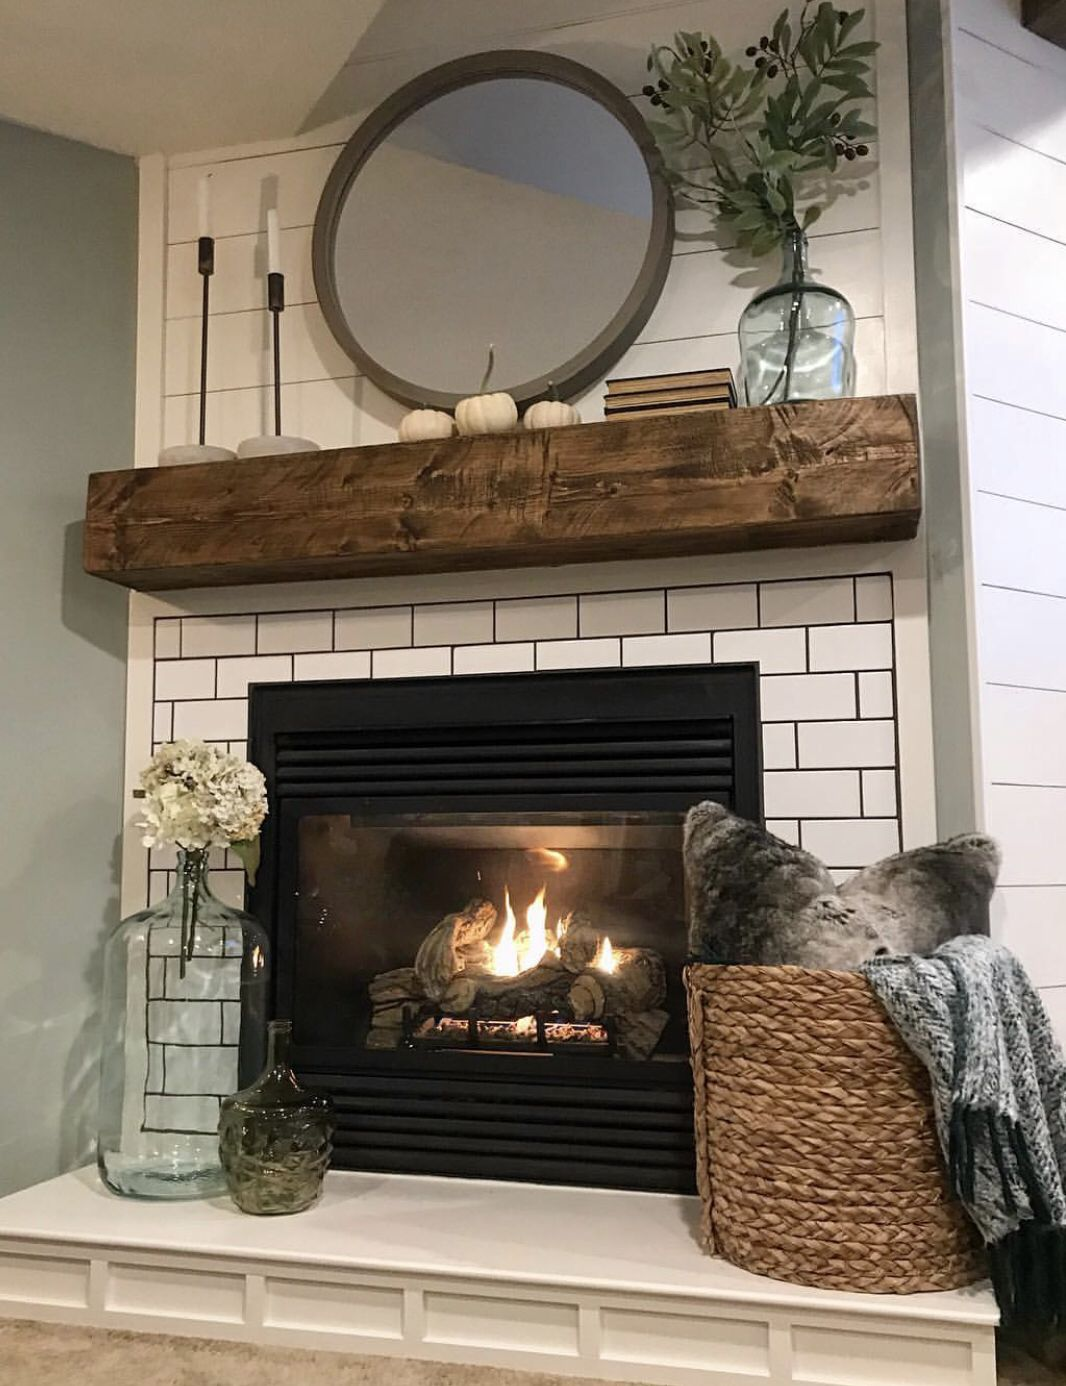 Mantle And Fireplace Home Fireplace Fireplace Mantel Decor